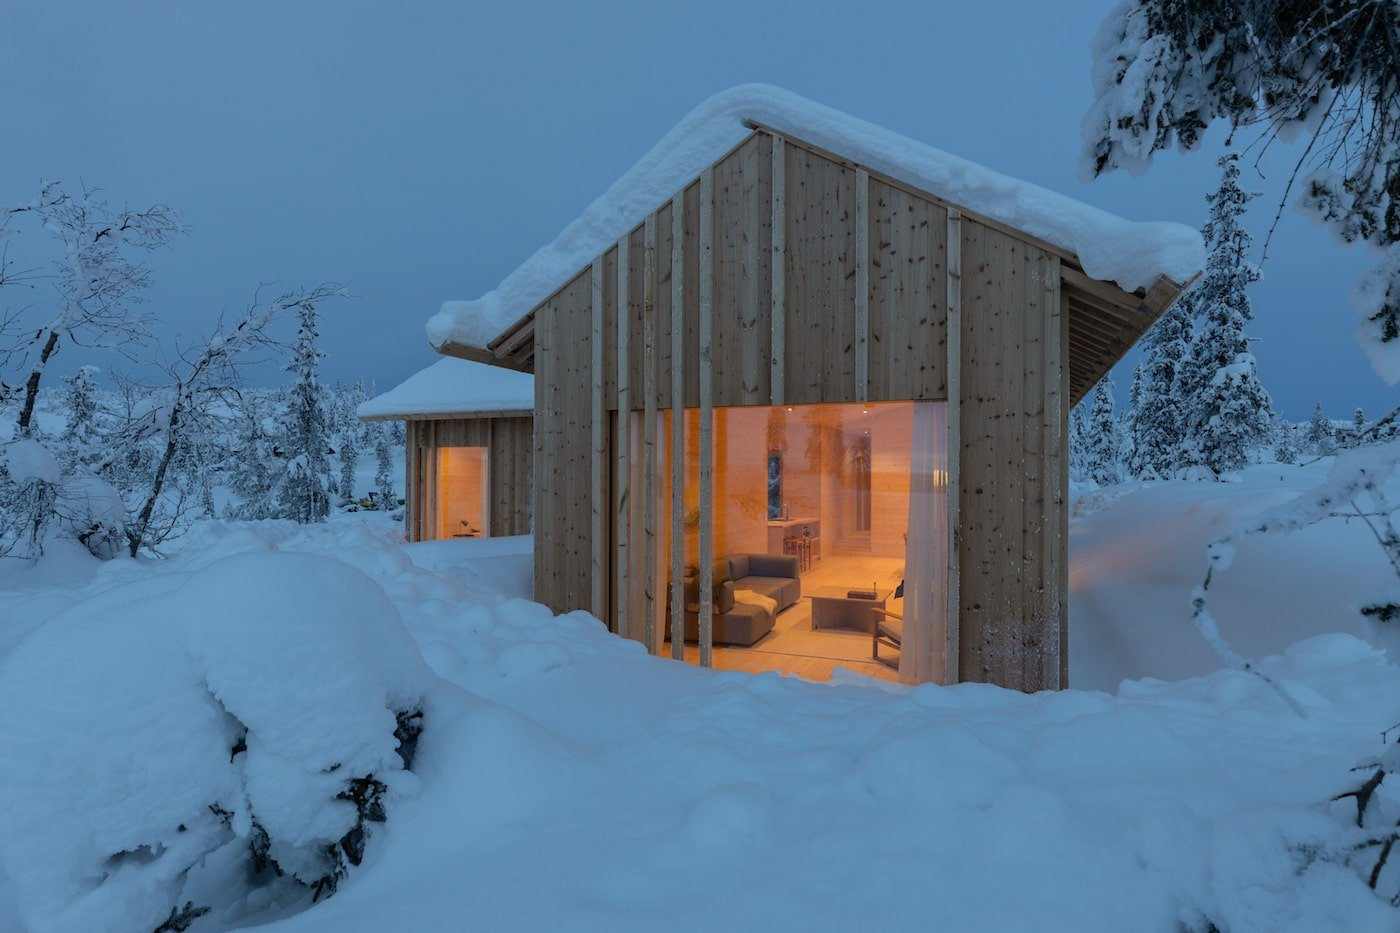 Exterior night time view looking into lounge room of Kvitfjell Cabin